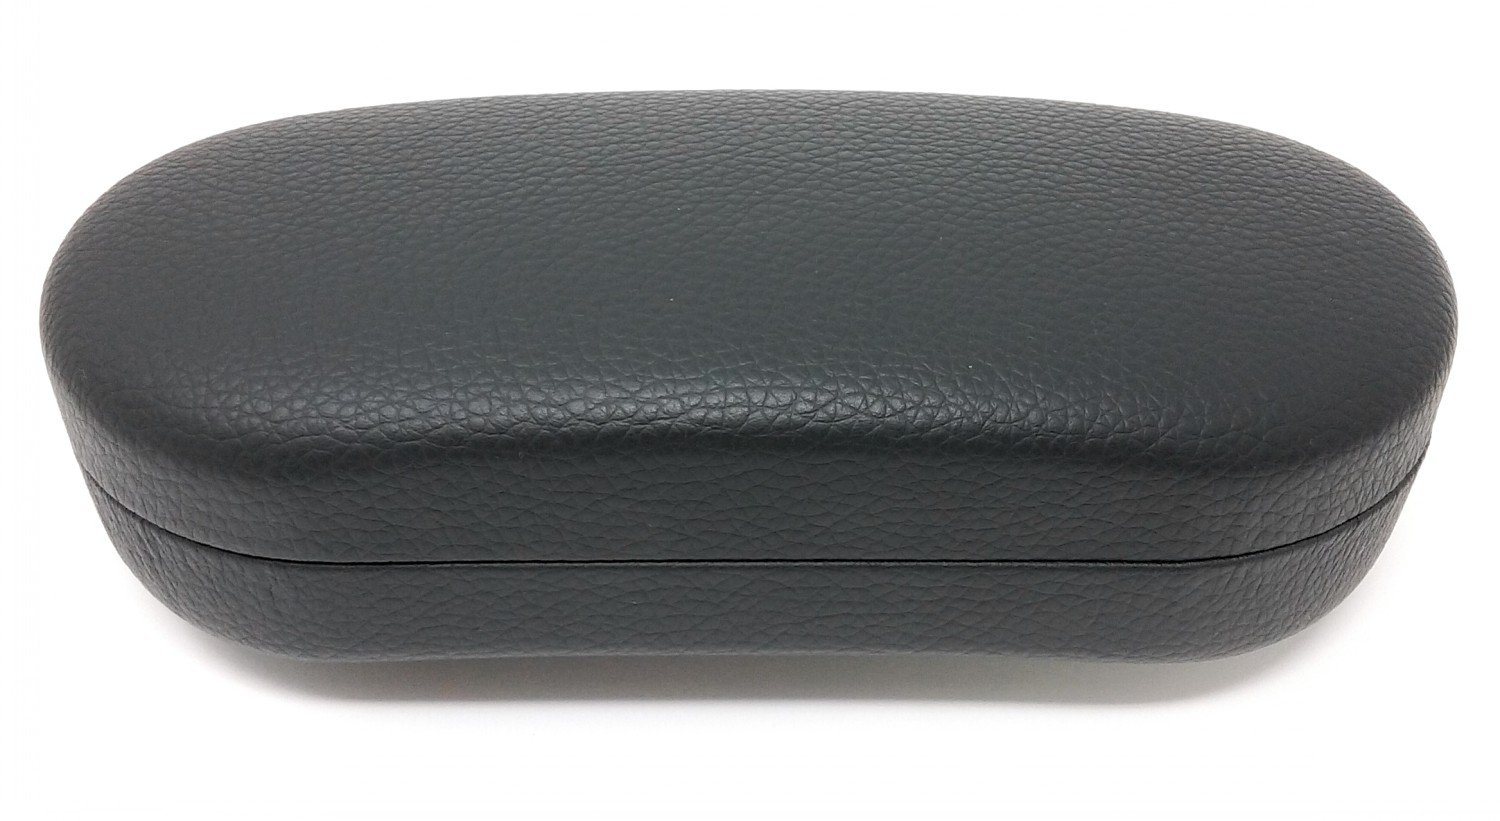 O'Meye Sunglasses Case MS87 (Black w Texture) by O'Meye